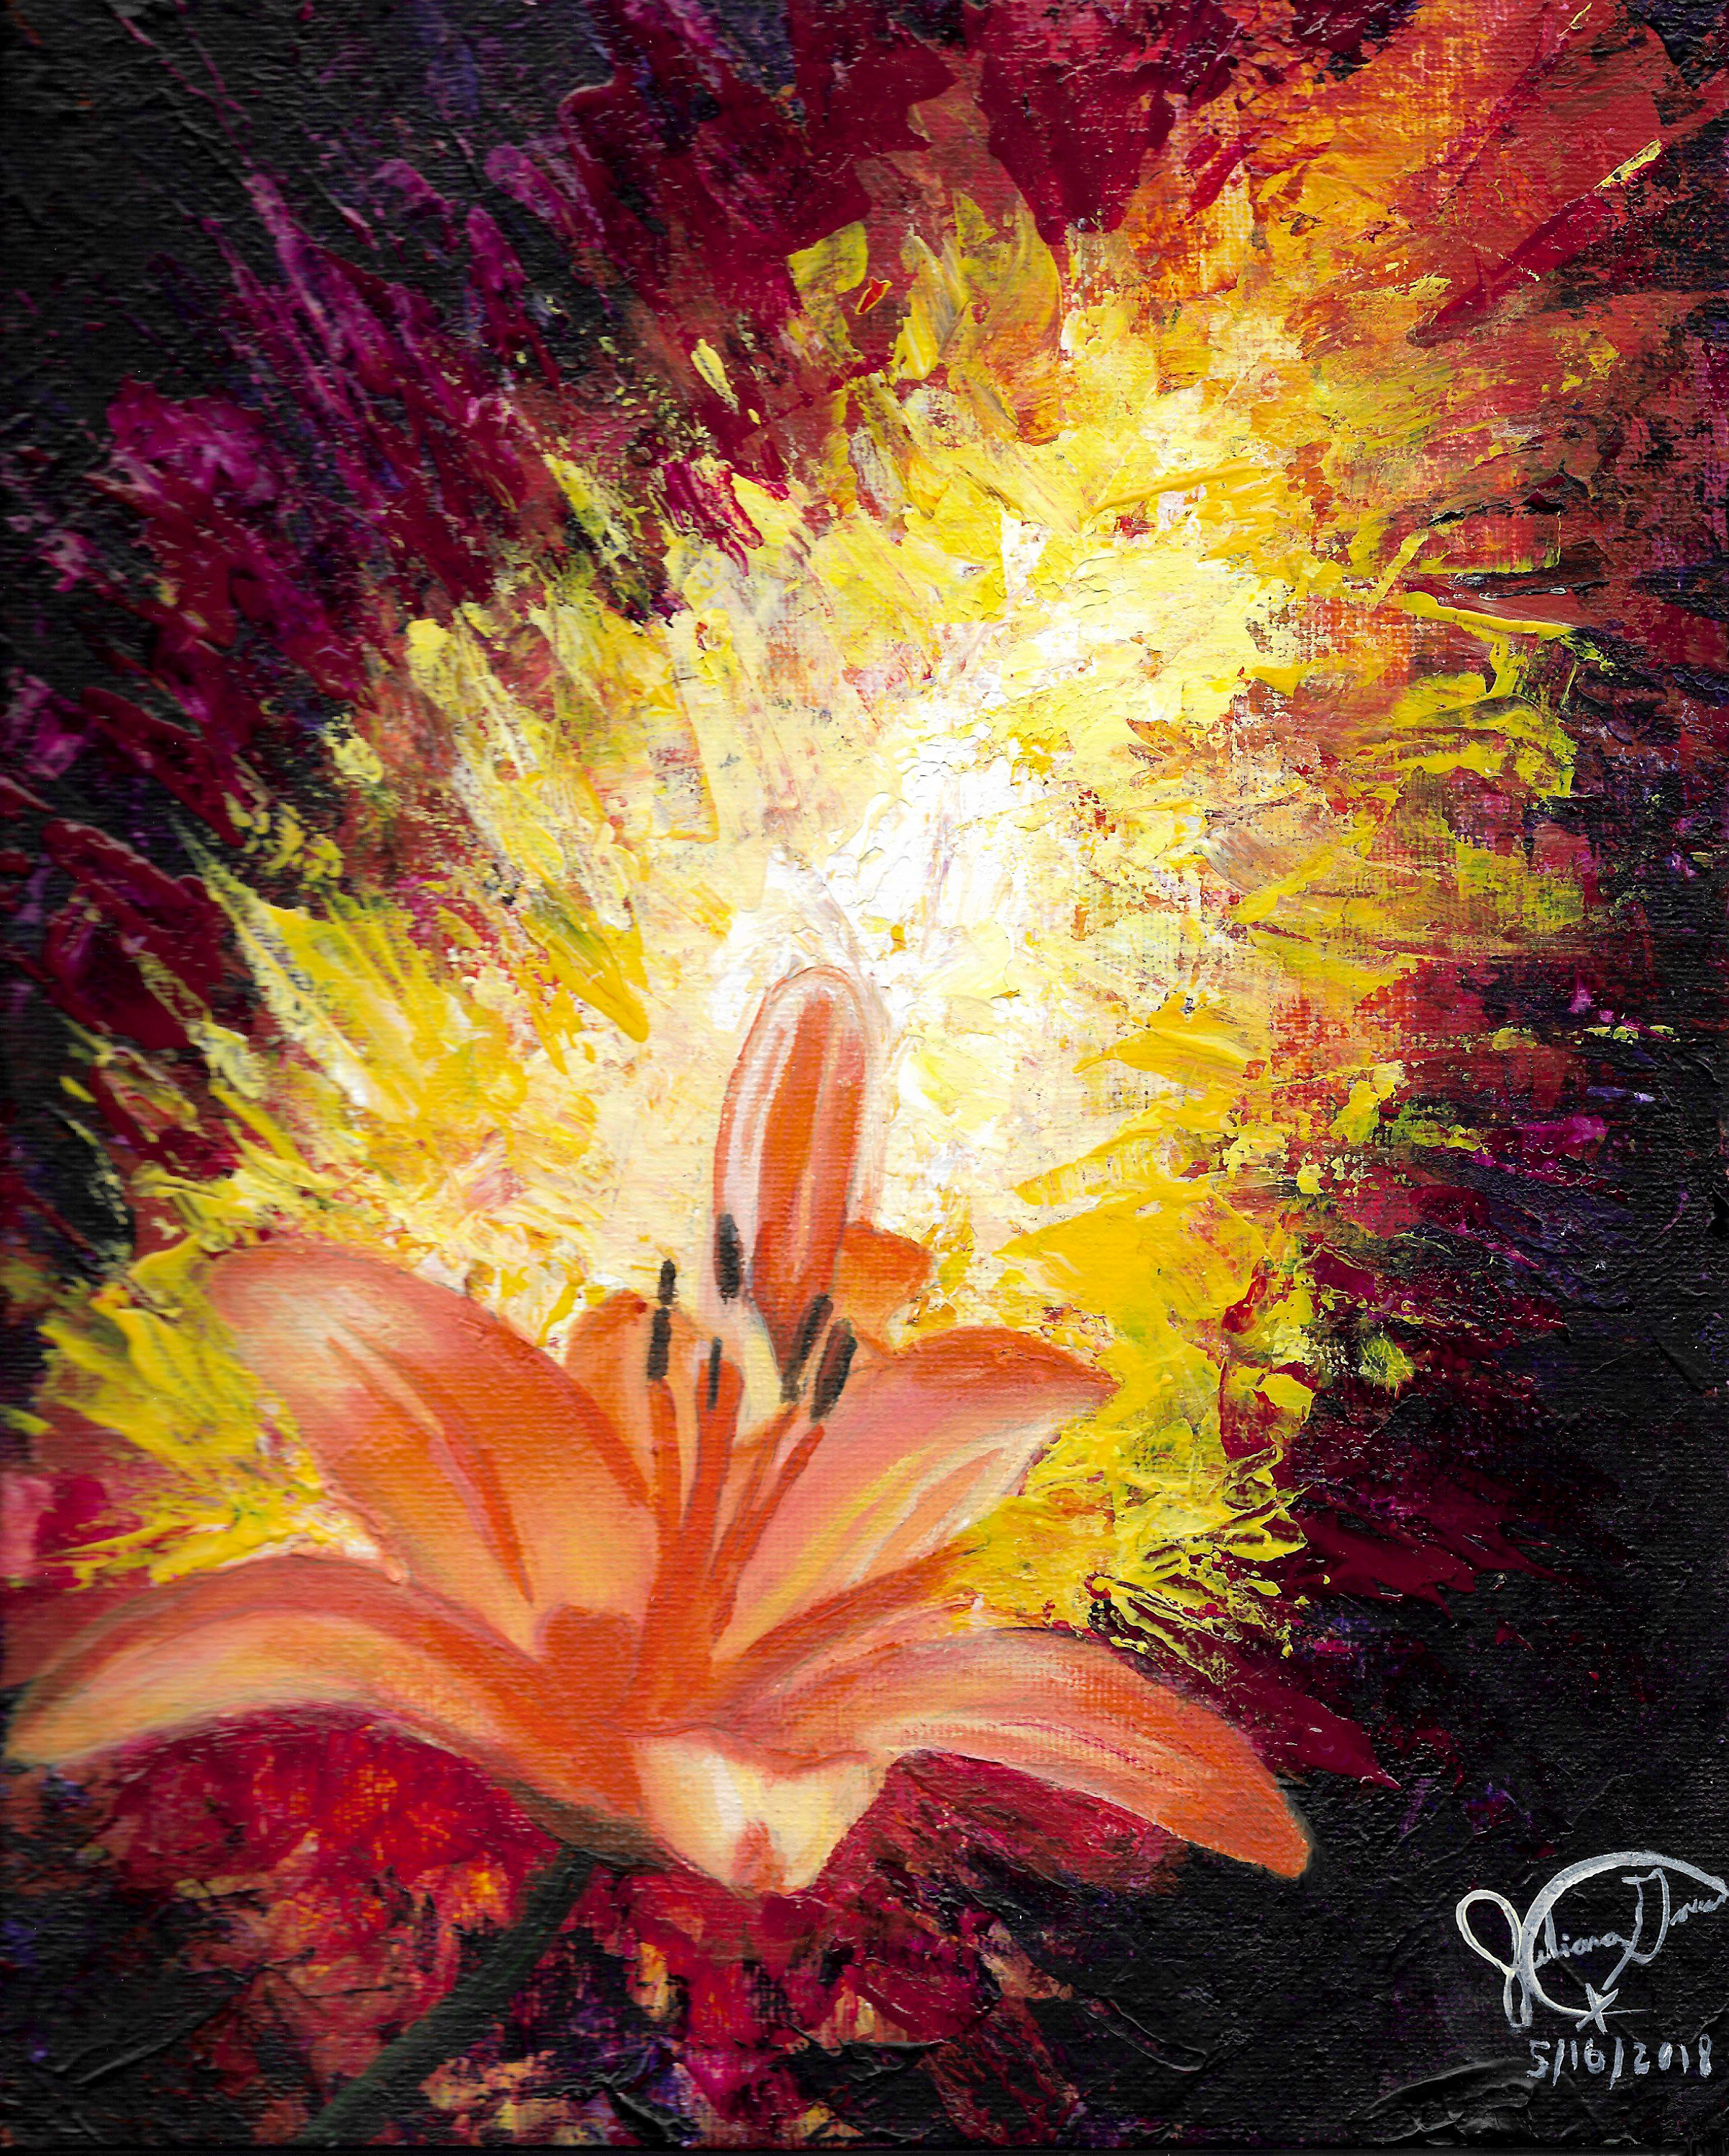 Here is a close up of the quick flower painting I made the